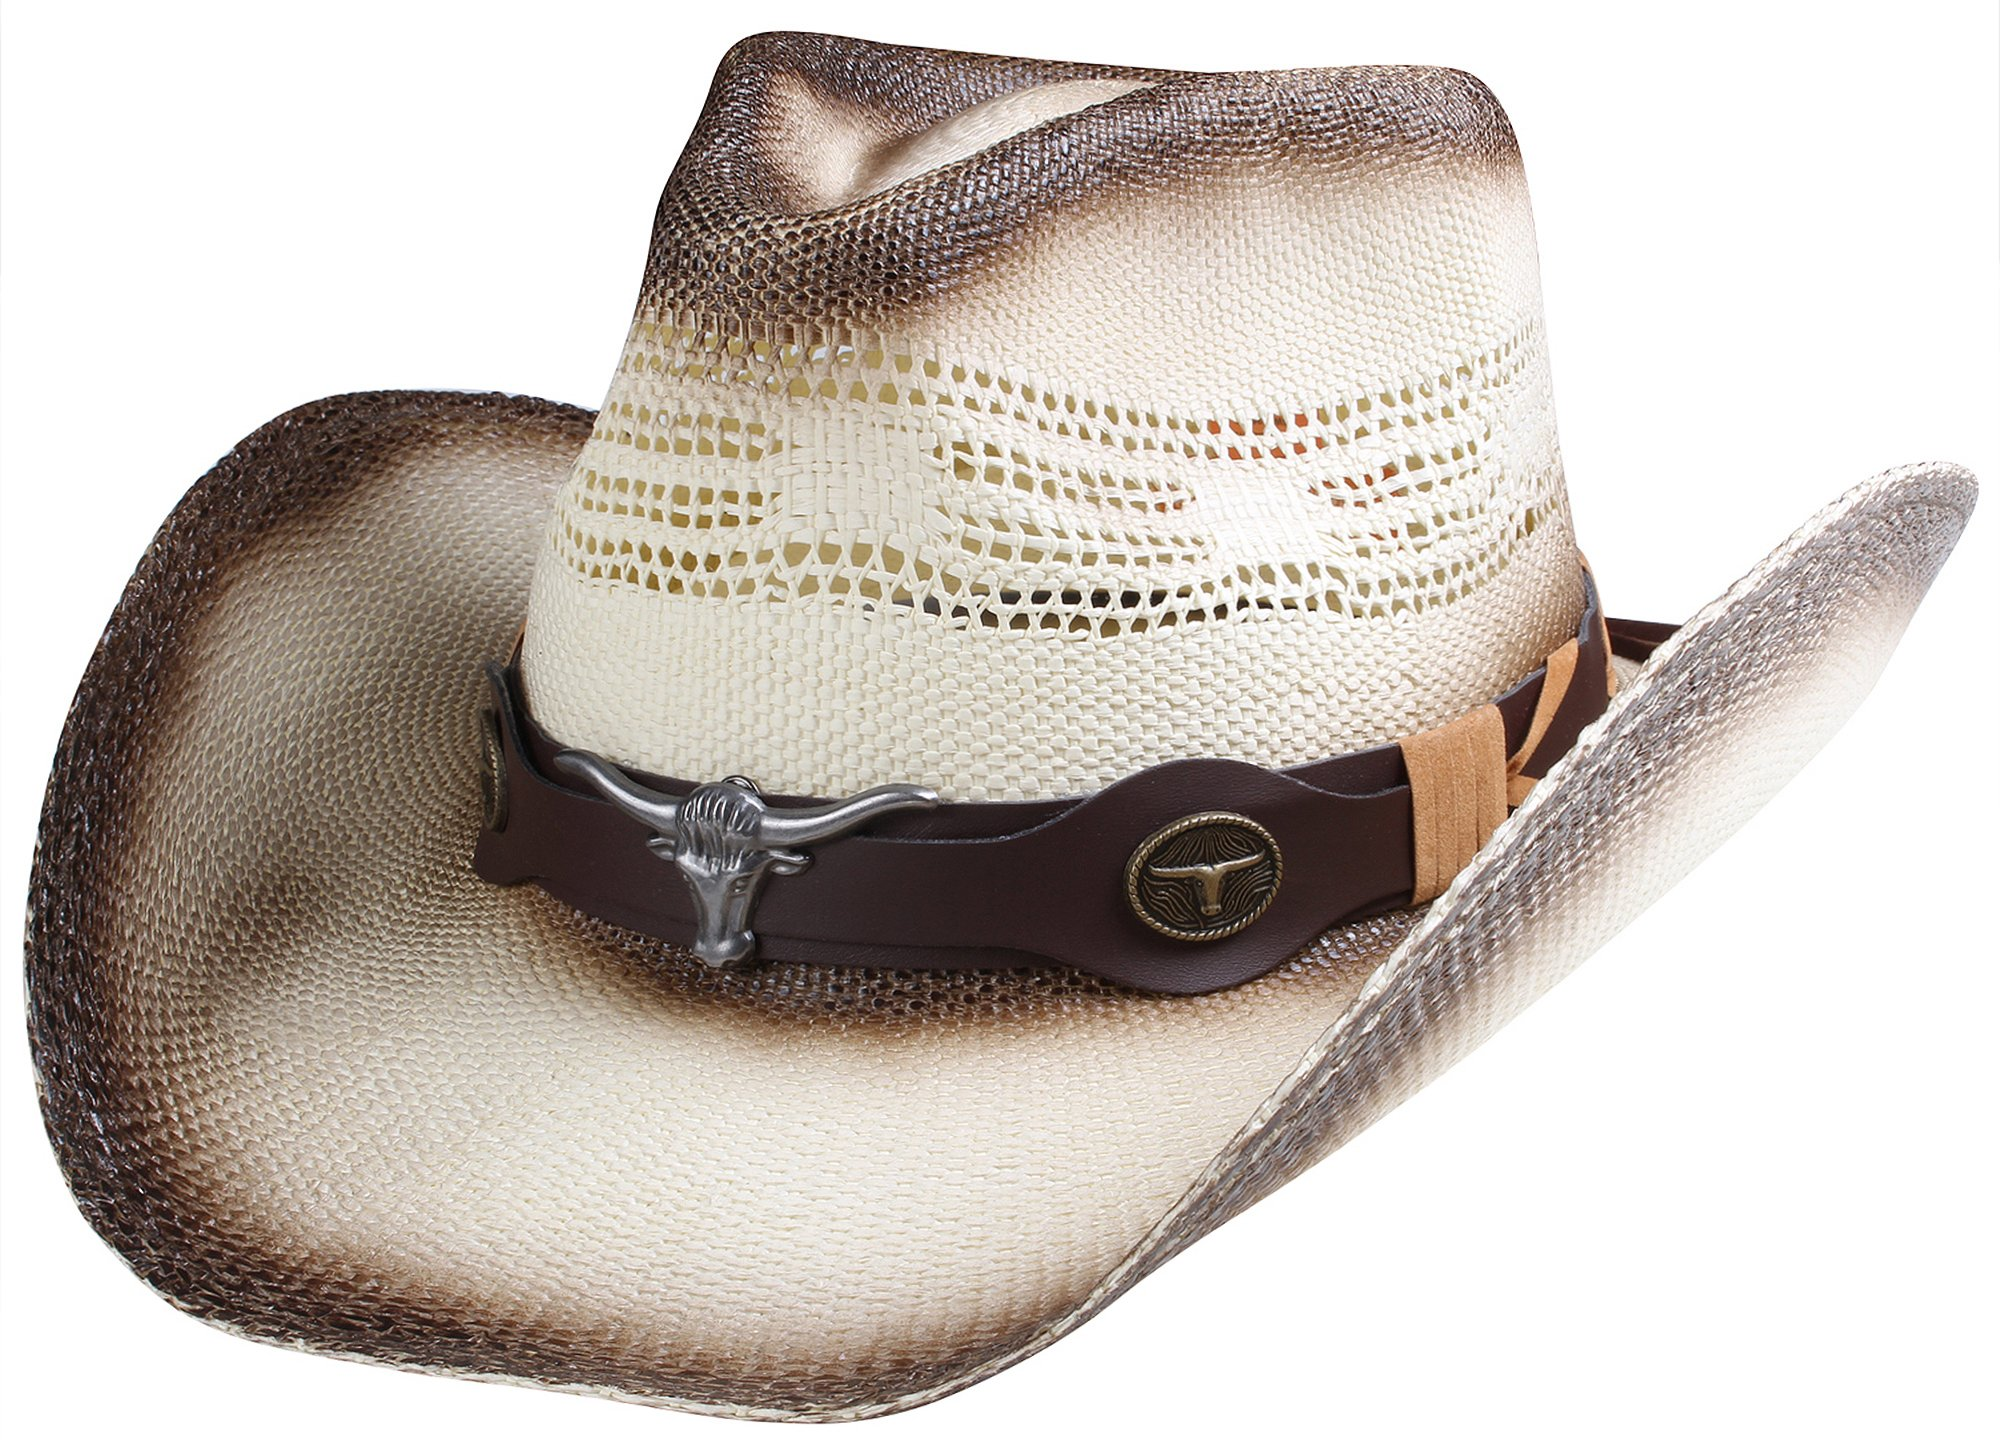 Queue Essentials Straw Cowboy Hat for Men Cowgirl Hat for Women Western  Wide Brim Hat Hats fbbccf2cd084